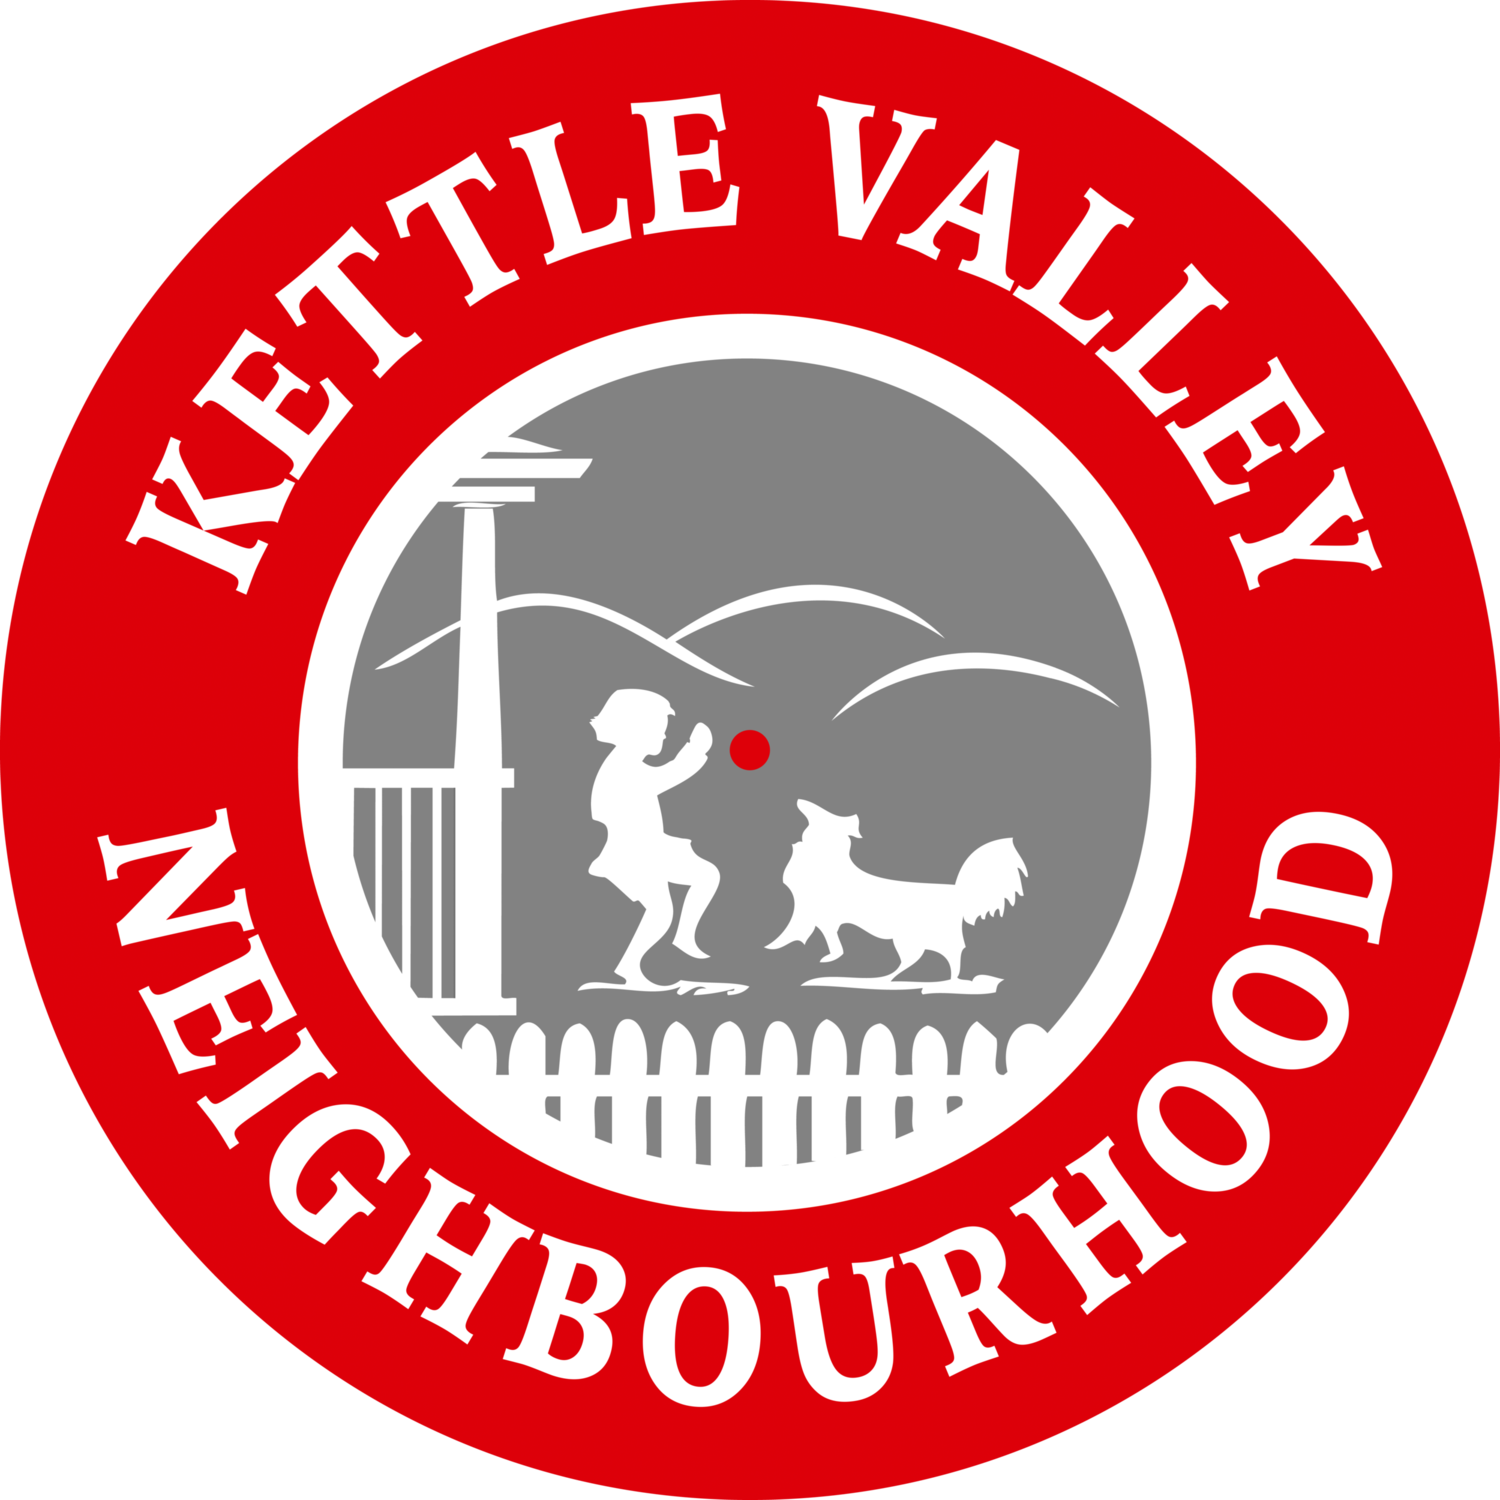 Kettle Valley Neighbourhood Association